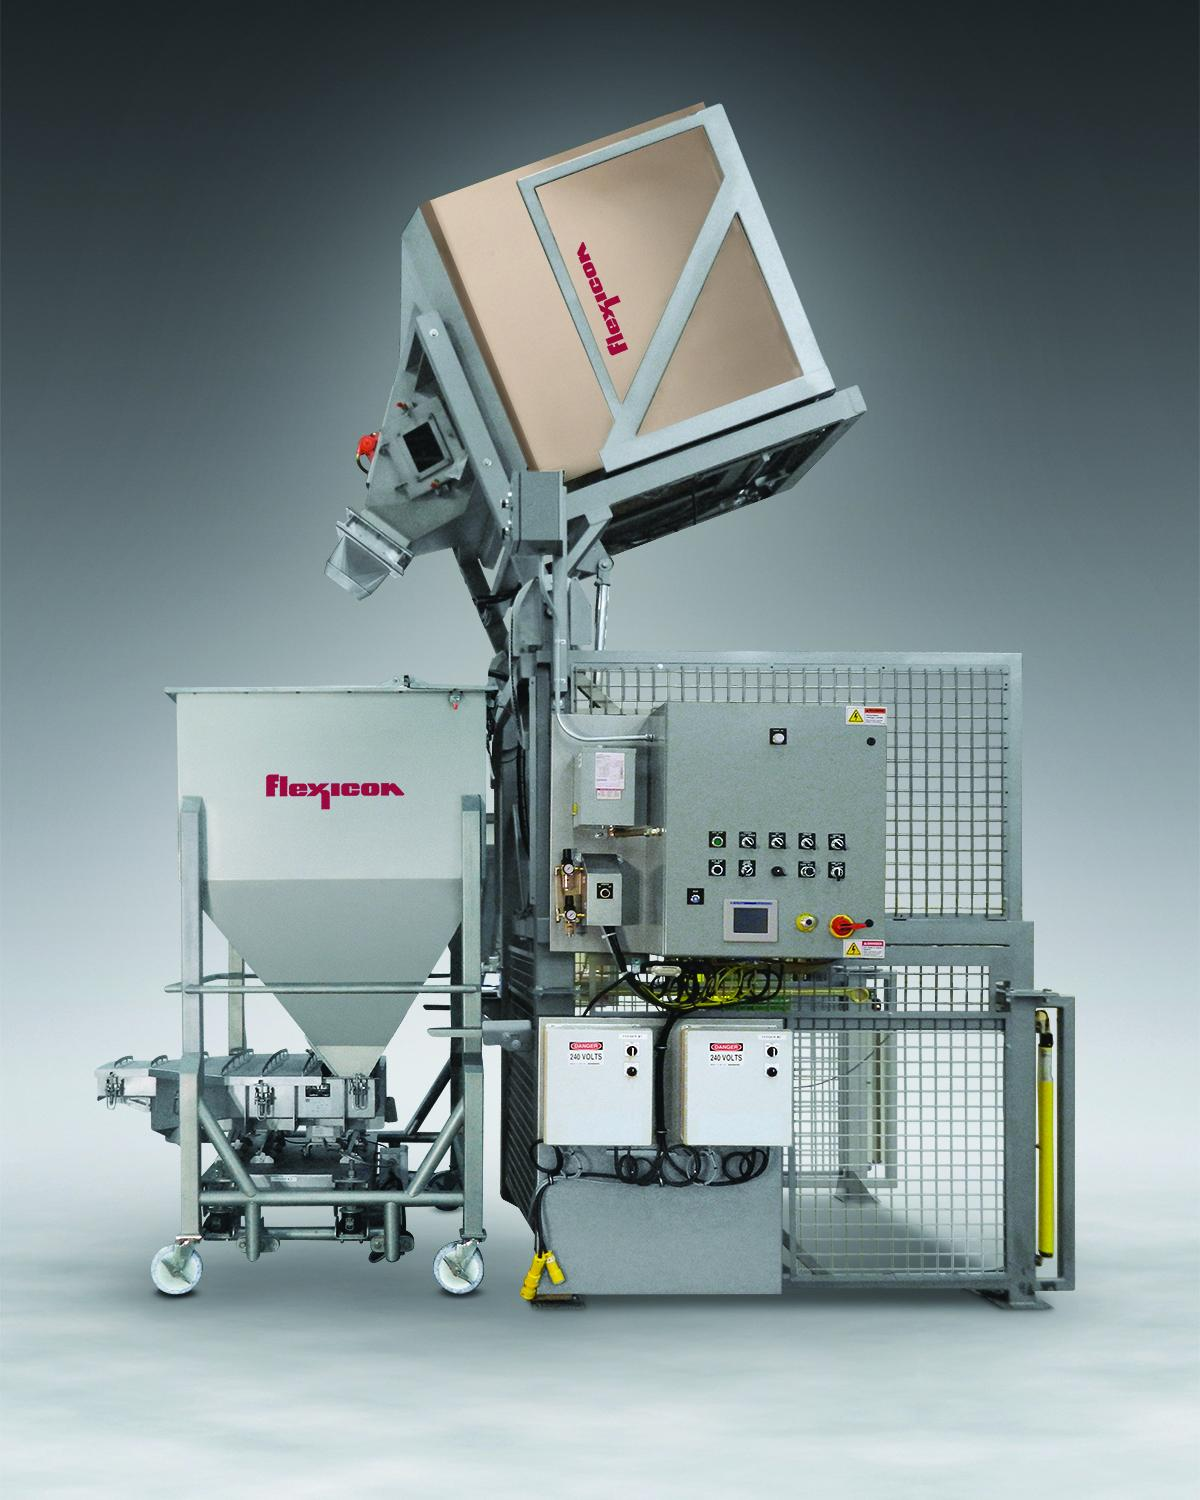 Flexicon's TIP-TITE Bulk Transfer System moves material from boxes into a mobile bin with vibratory feeder, dust-free